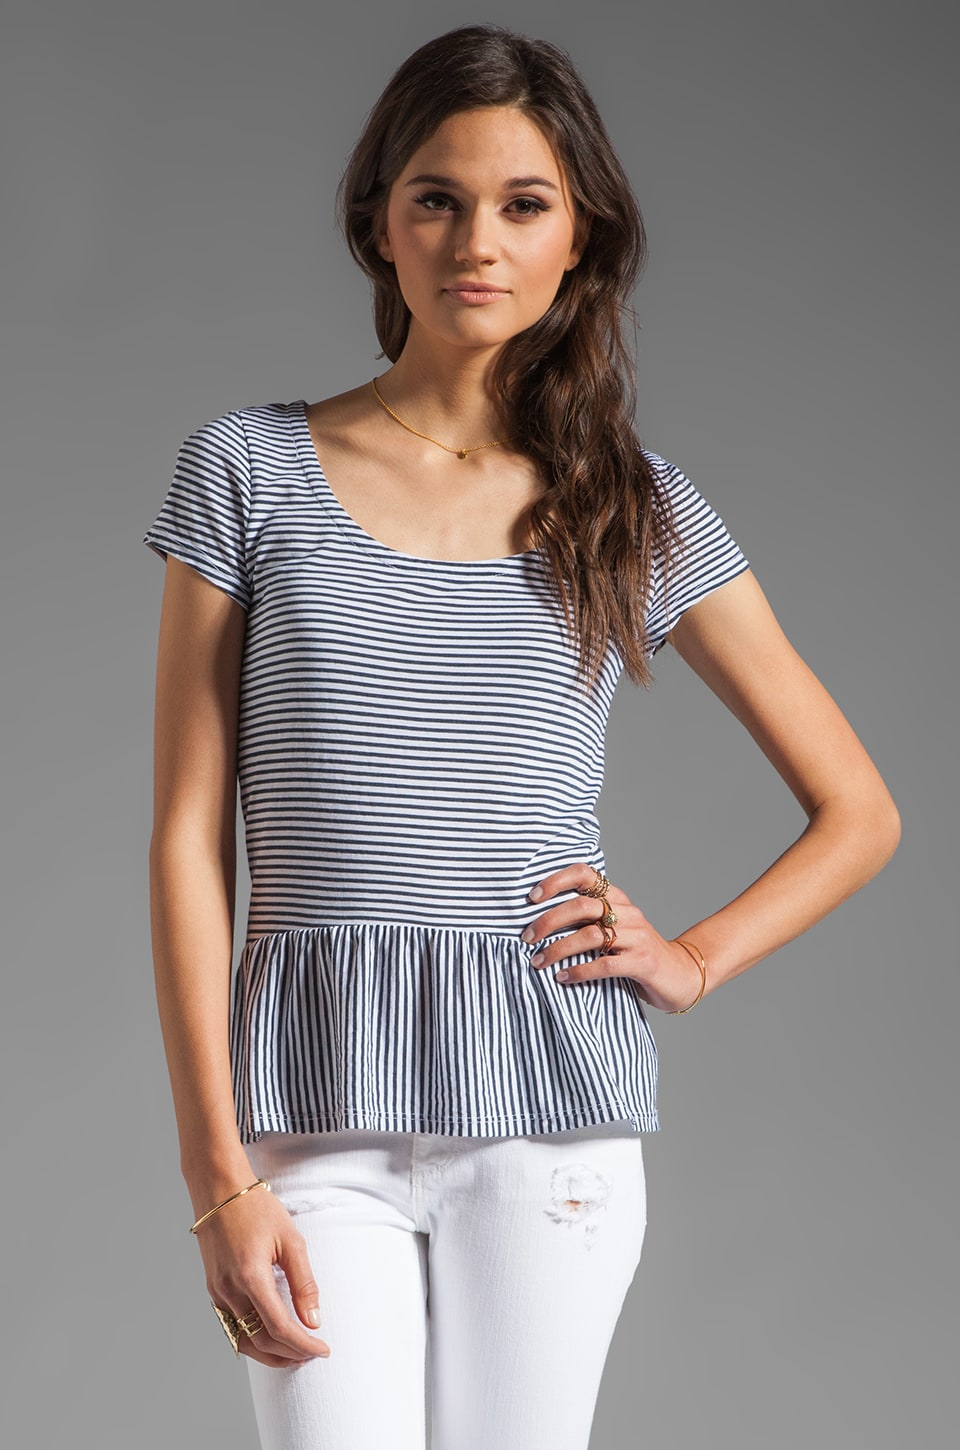 Splendid Naples Stripe Peplum Top in White